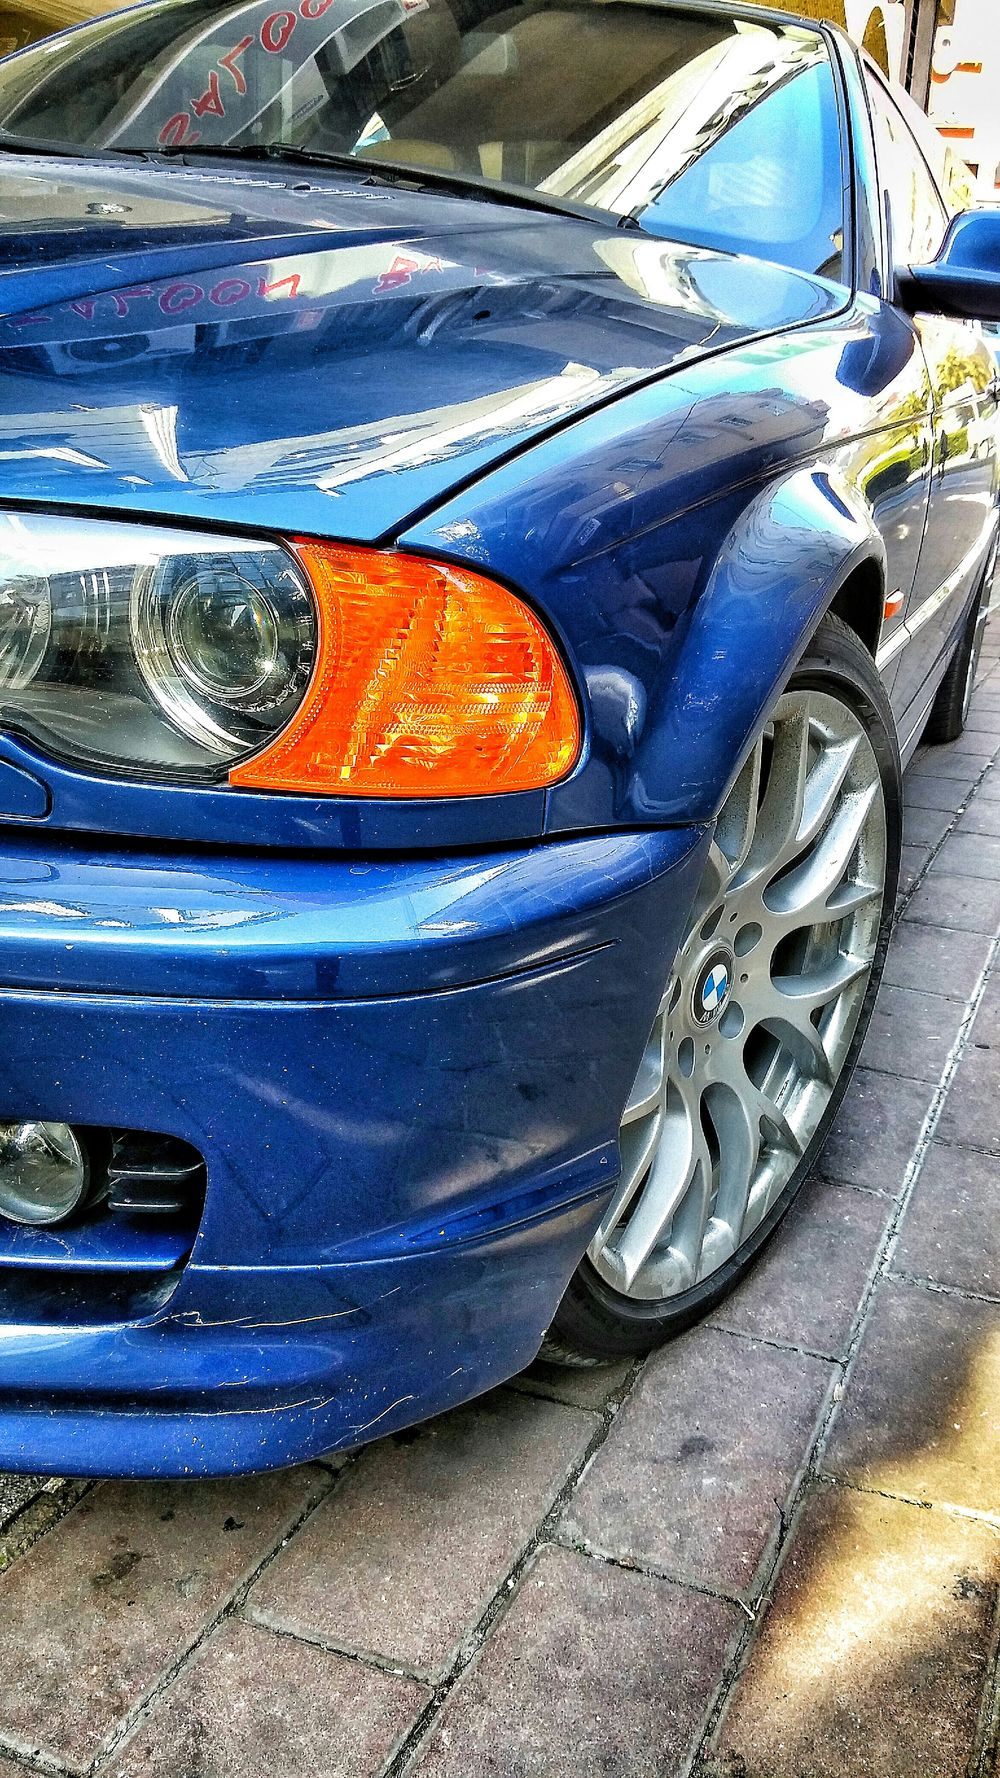 Bmw 330ci E46 That's Me Taking Photos Hanging Out Hello World Popular Photo Networking